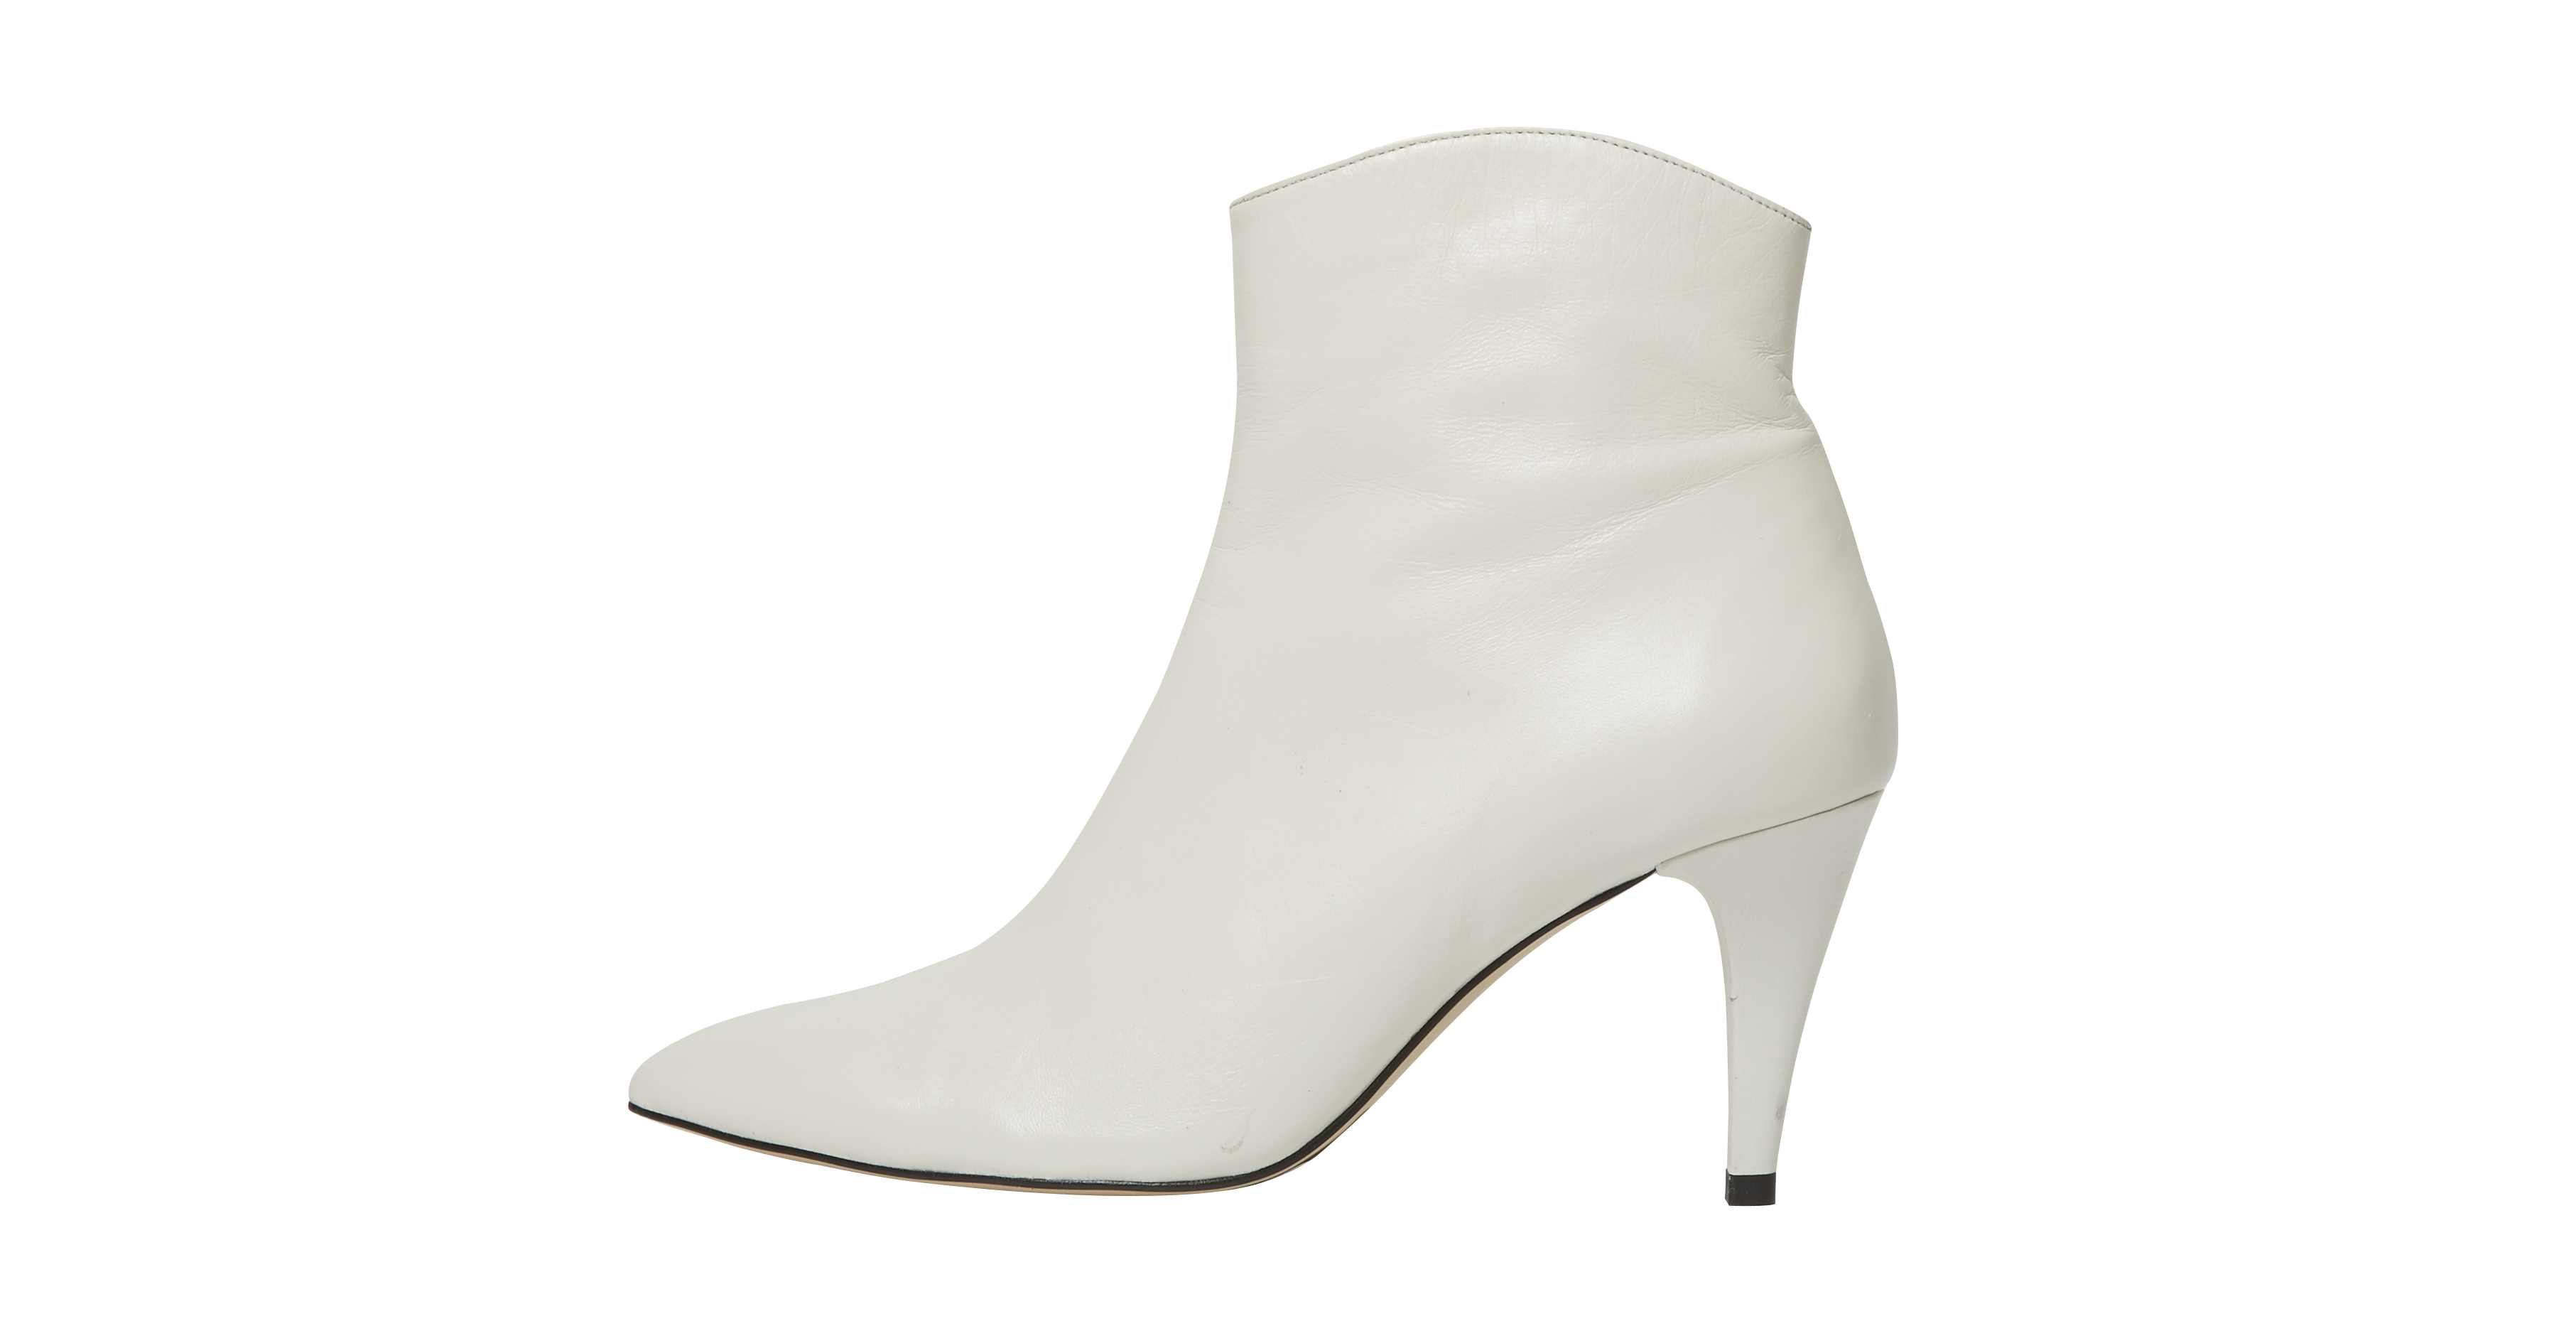 Office Ab Fab White Boots, £90